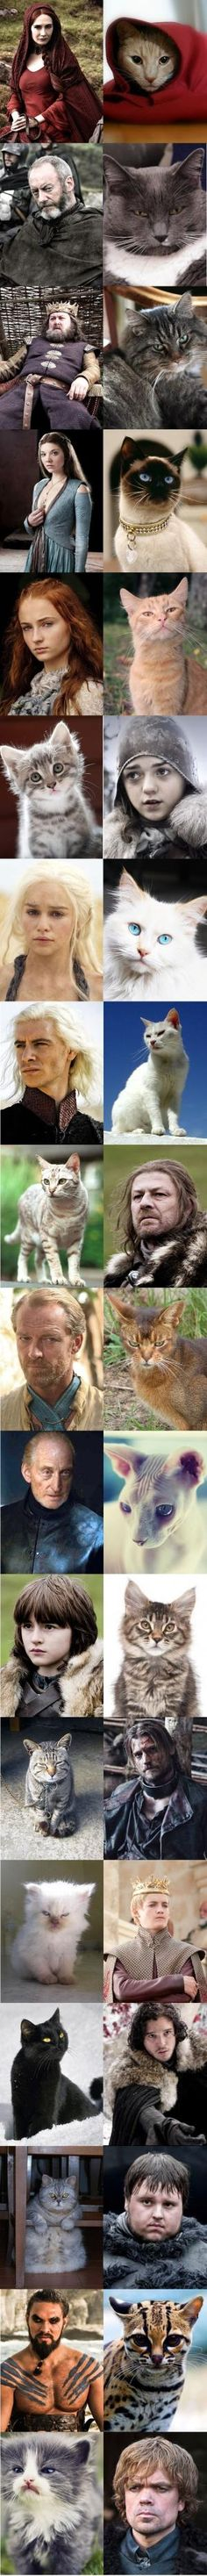 Game of Thrones... Now with Cats! by Iv VI